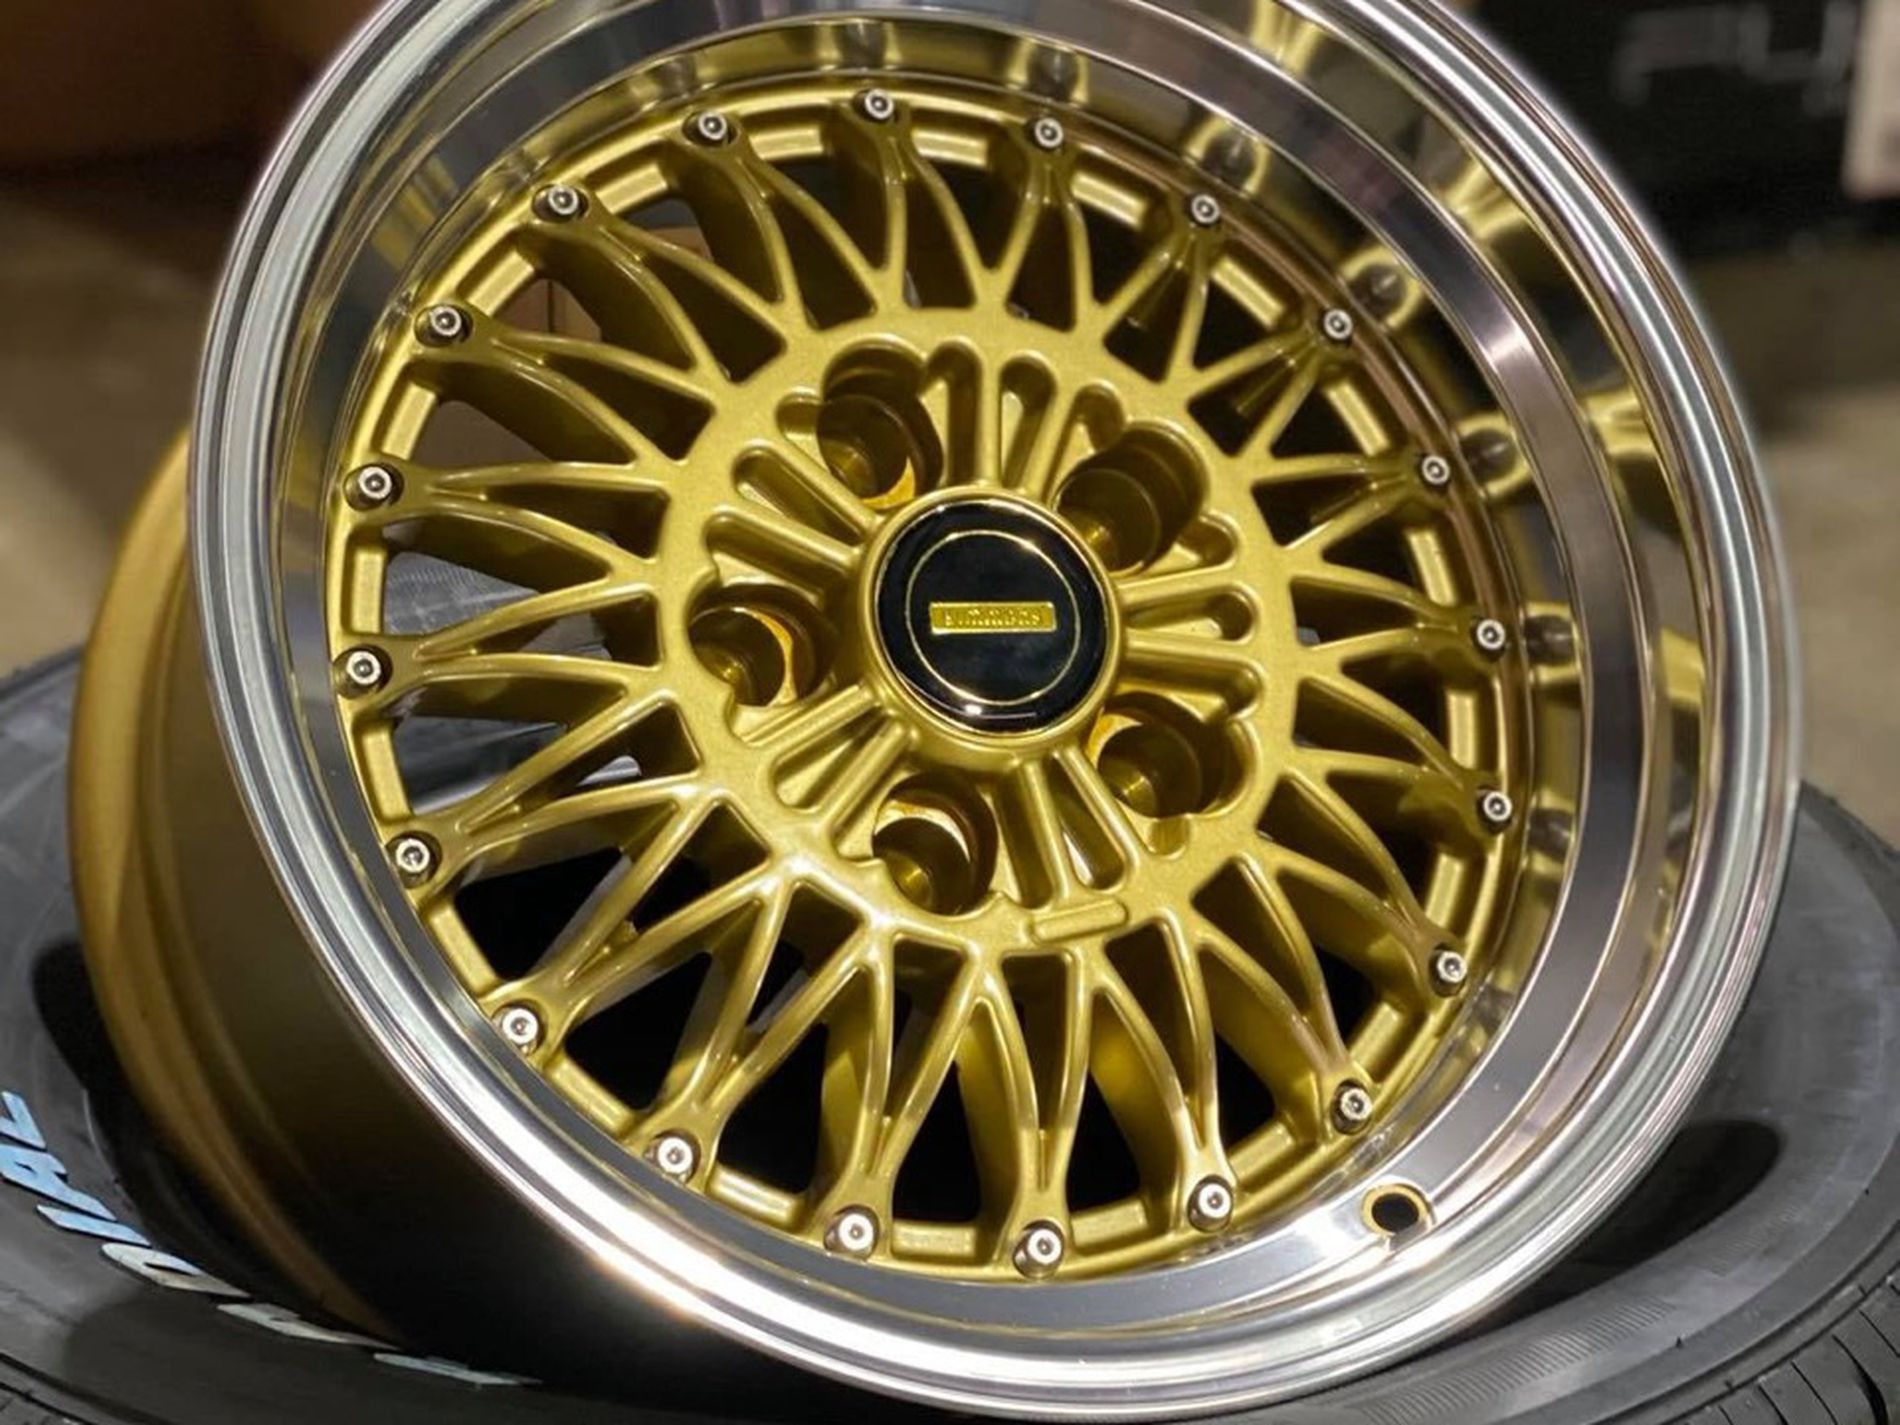 Automotive Wheels, Tyres, 4x4 Parts and Accessories Retail Business for Sale